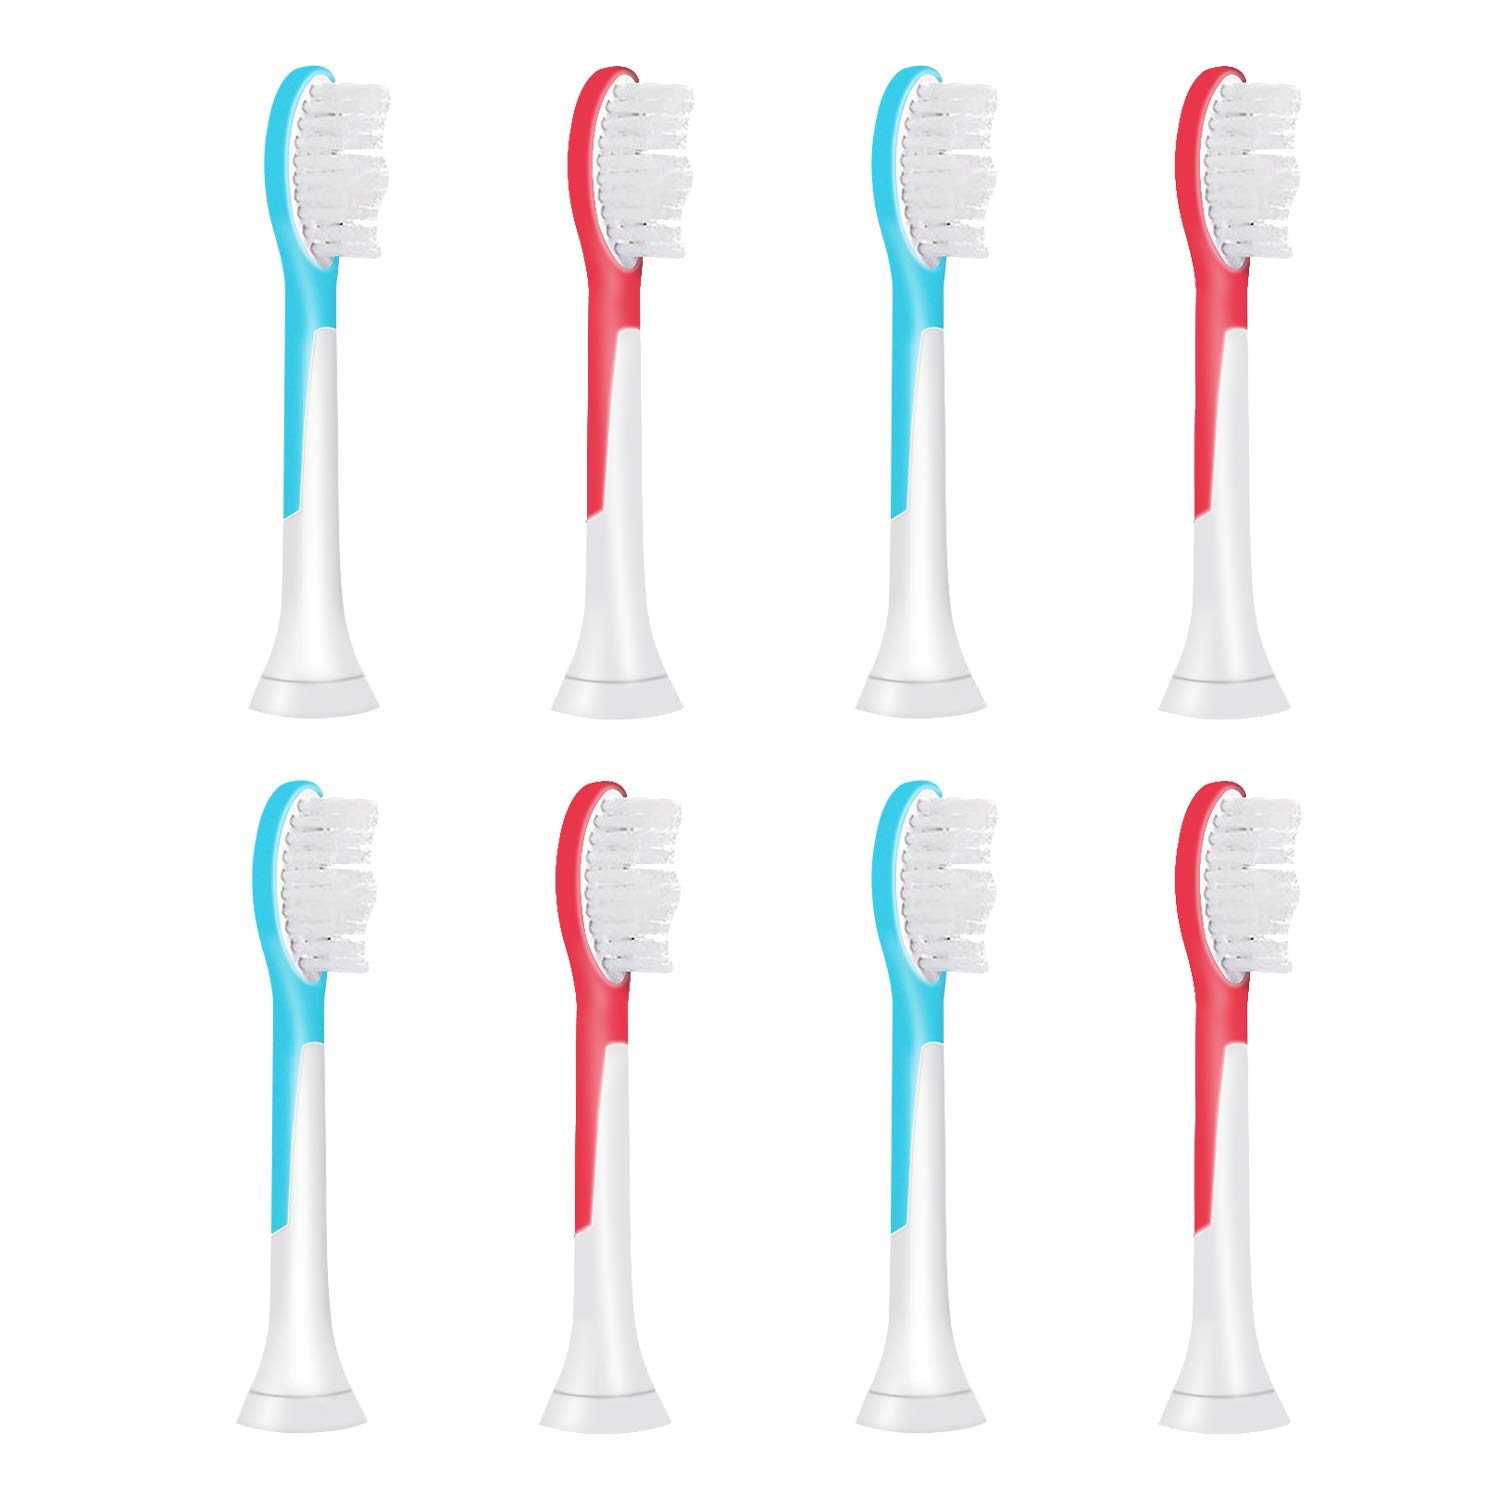 Toothbrush Head for Philips Sonicare, 8 Pack, Sonicare Kids HX6321,Replacement Brush Heads for Kids and Children Aged Over 6, High Quality 8 Pack, Sonicare Kids HX6321 VINFANY